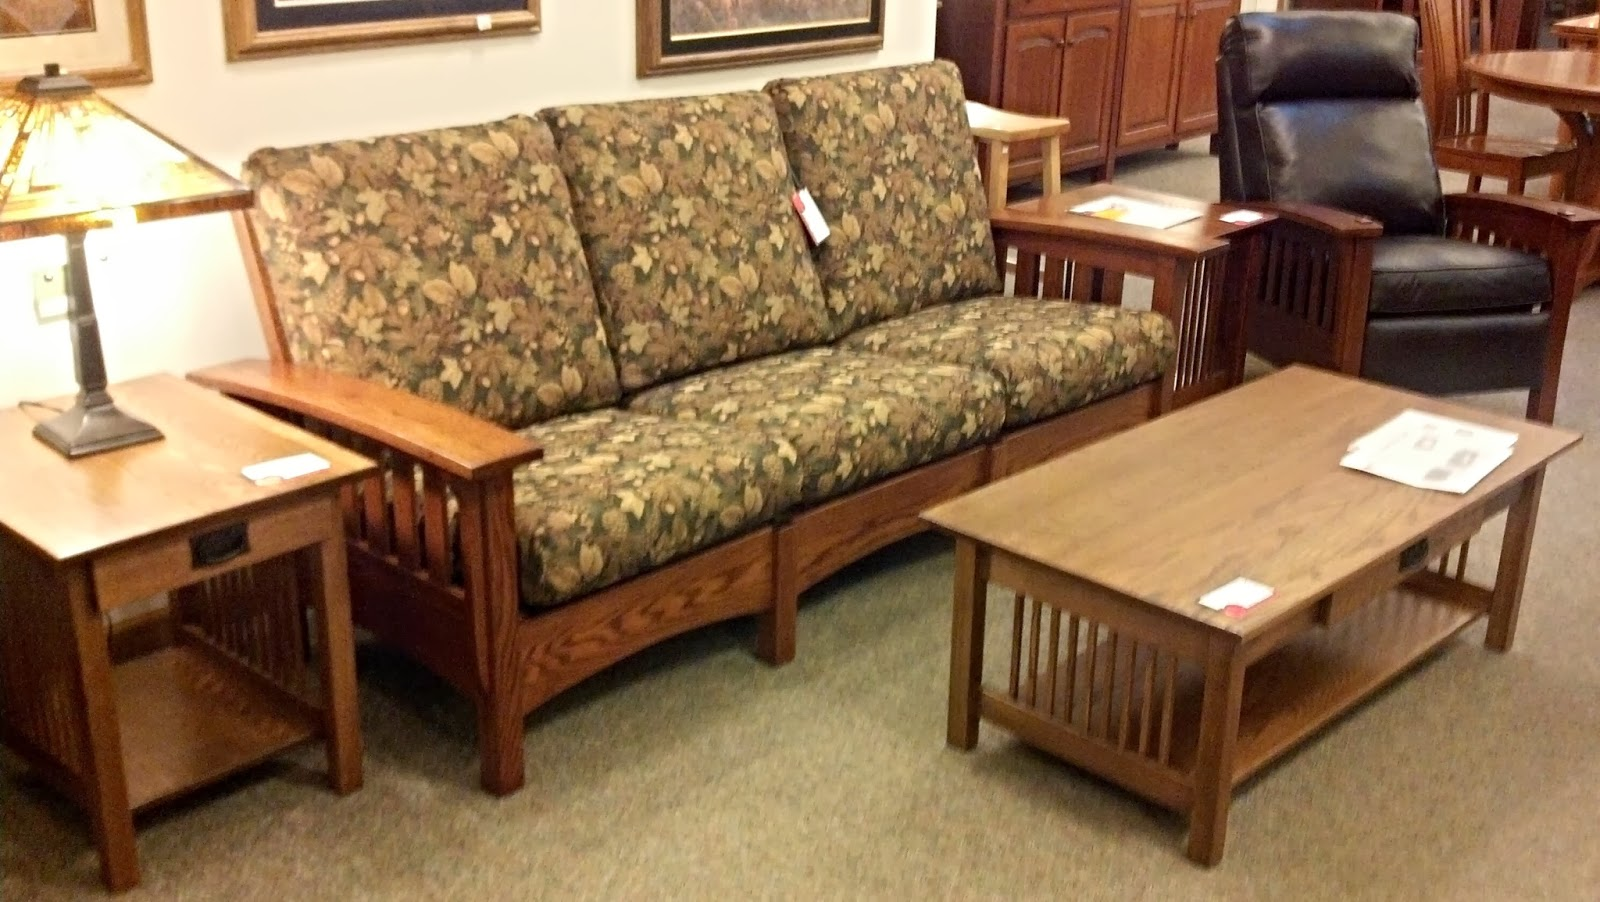 Mission Chair Amish Mission Recliner 17 Images Binghamton Furniture Mission Sofa Recliner